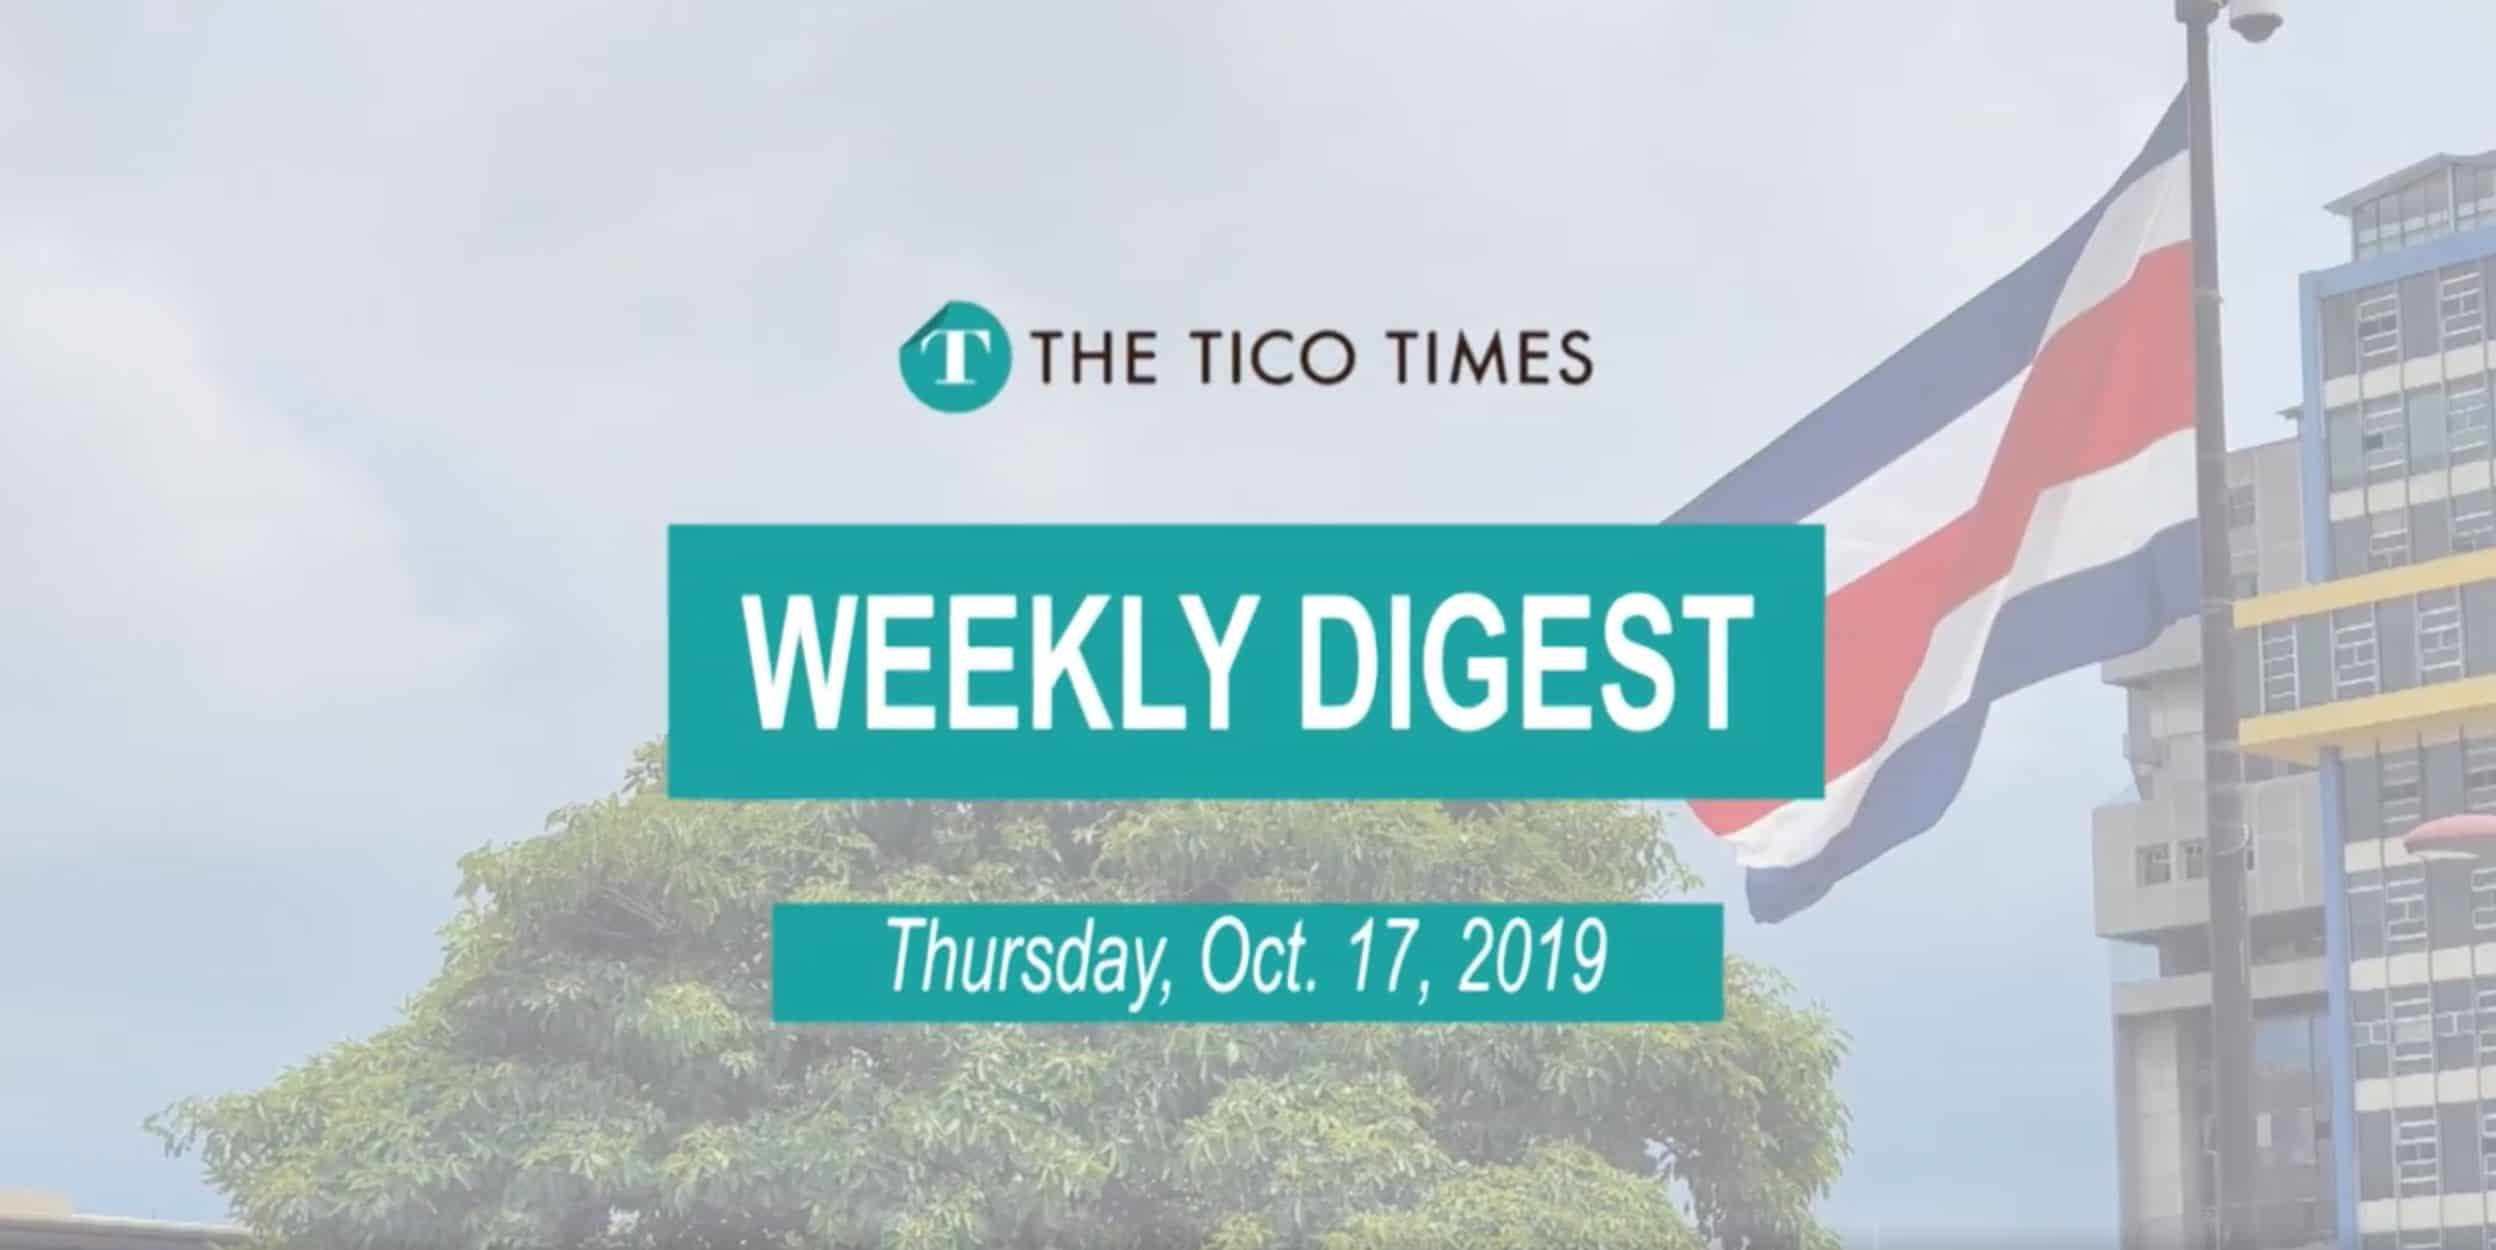 Tico Times Weekly Digest